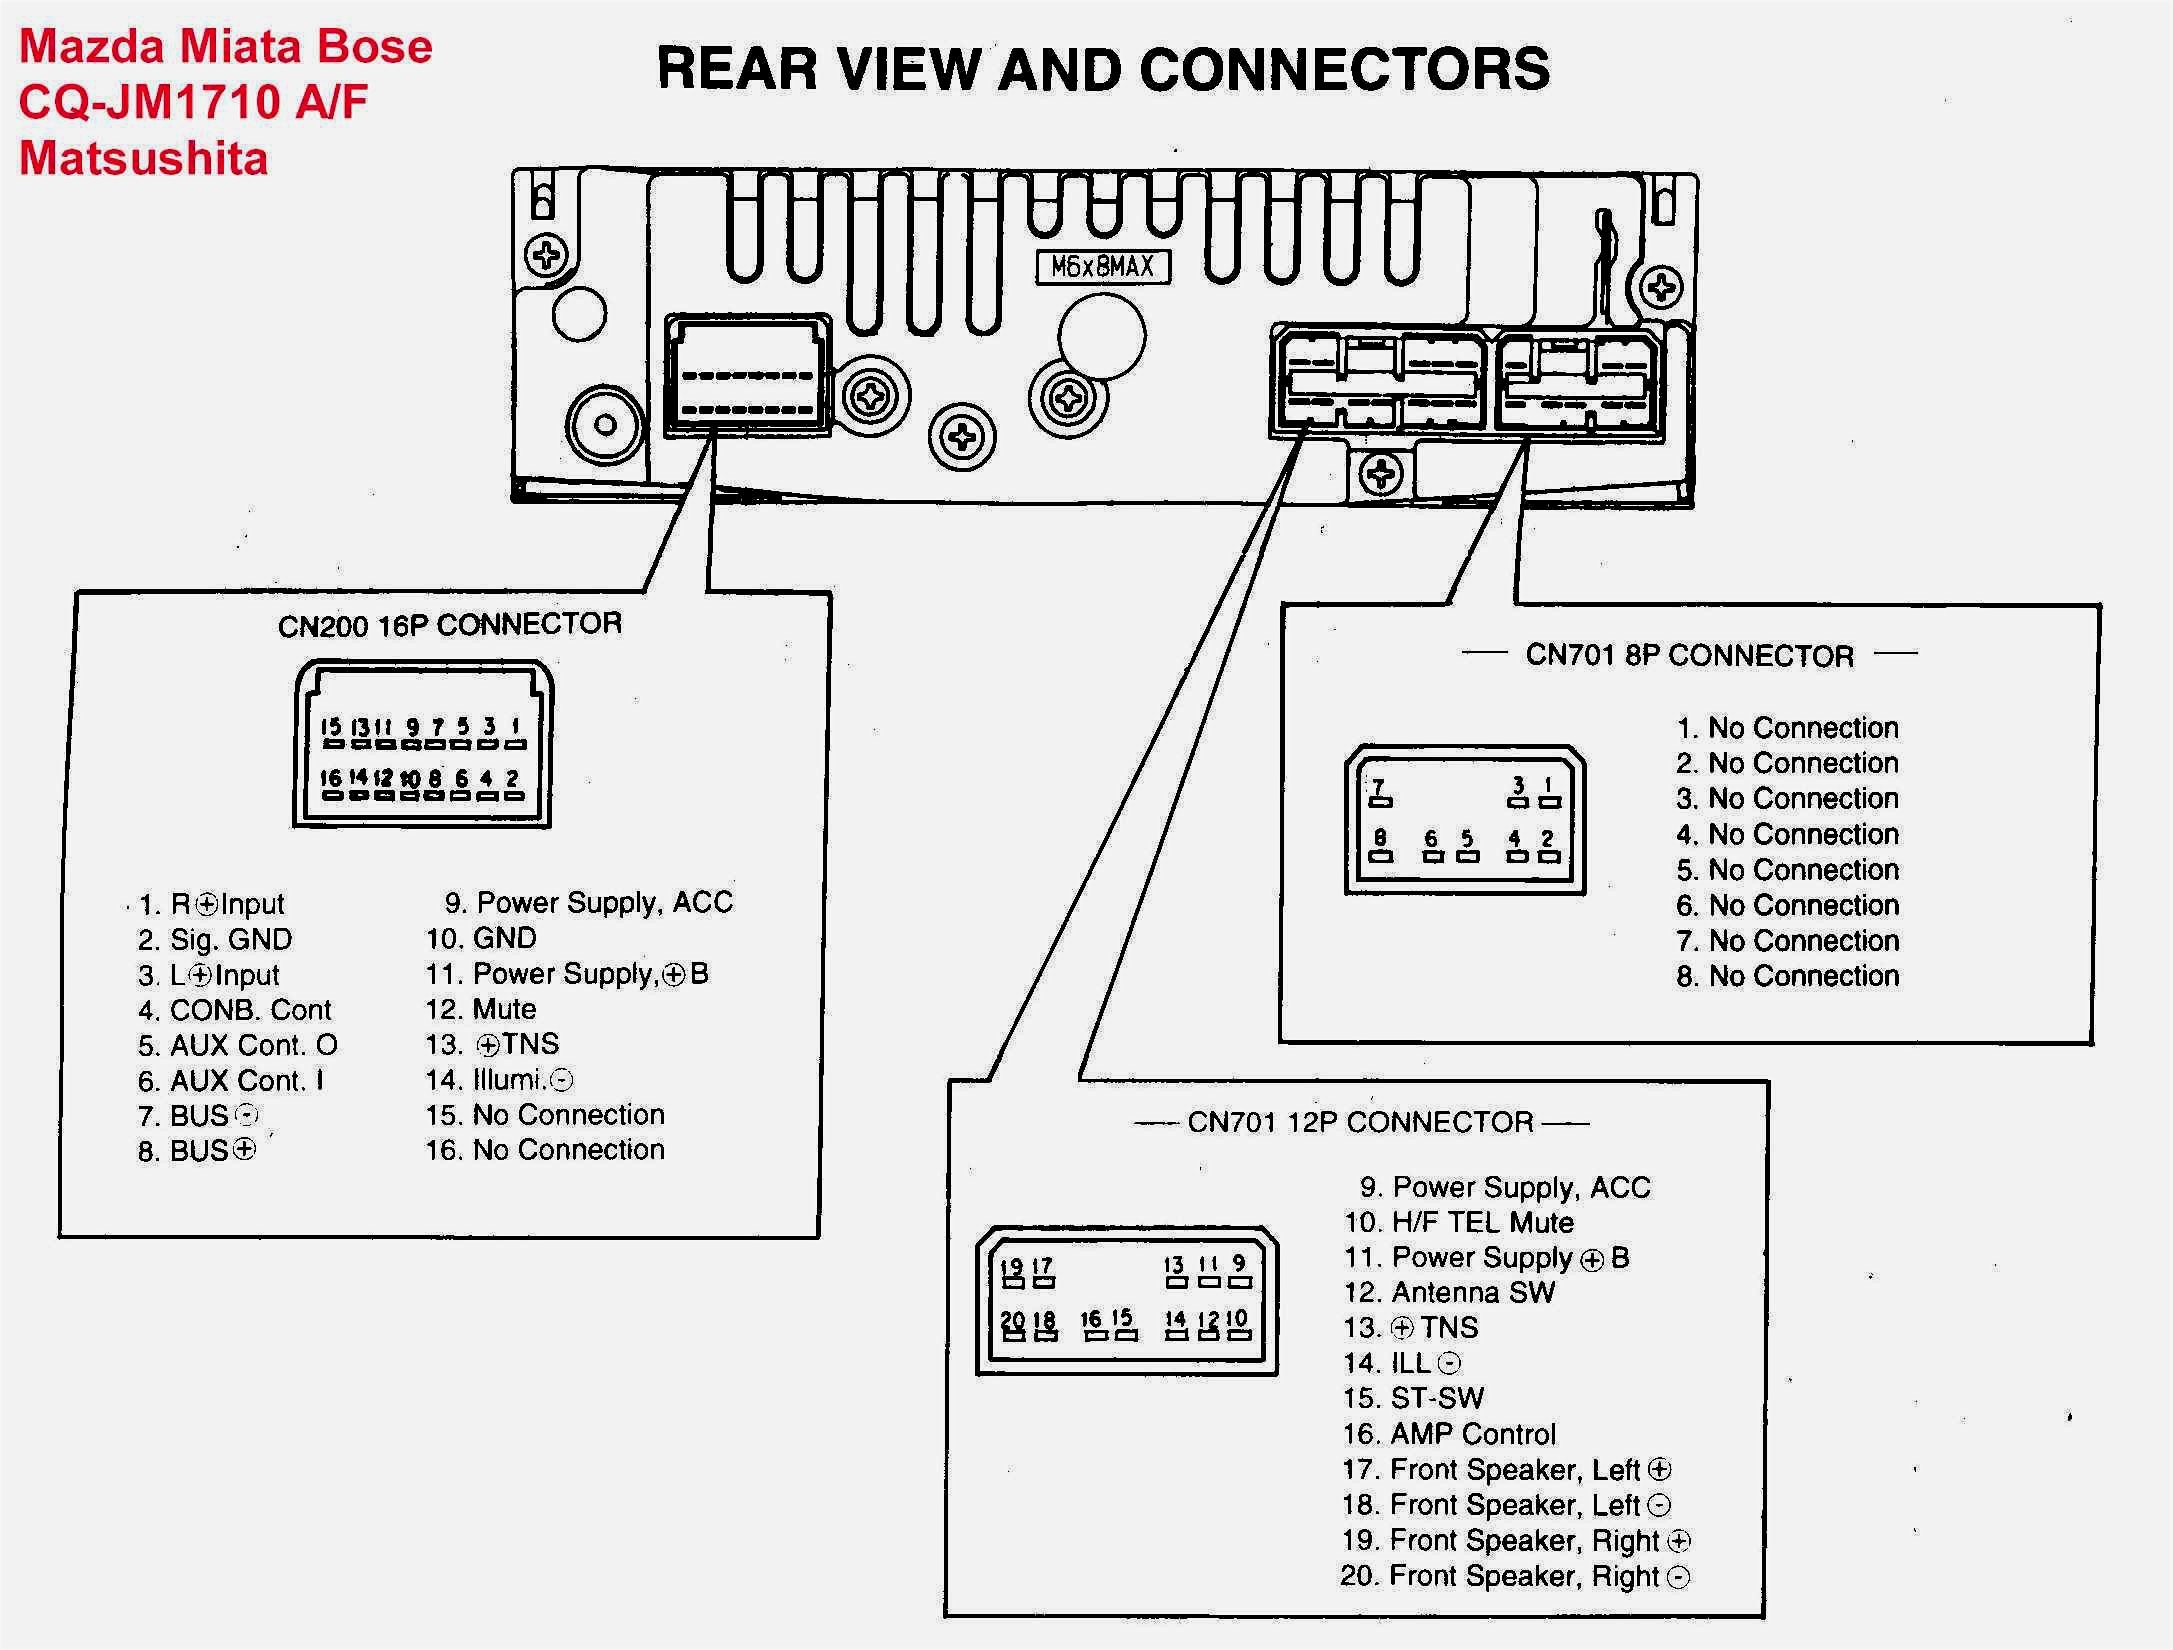 Pioneer 16 Pin Wiring Harness Schematic | Manual E-Books - Pioneer 16 Pin Wiring Harness Diagram